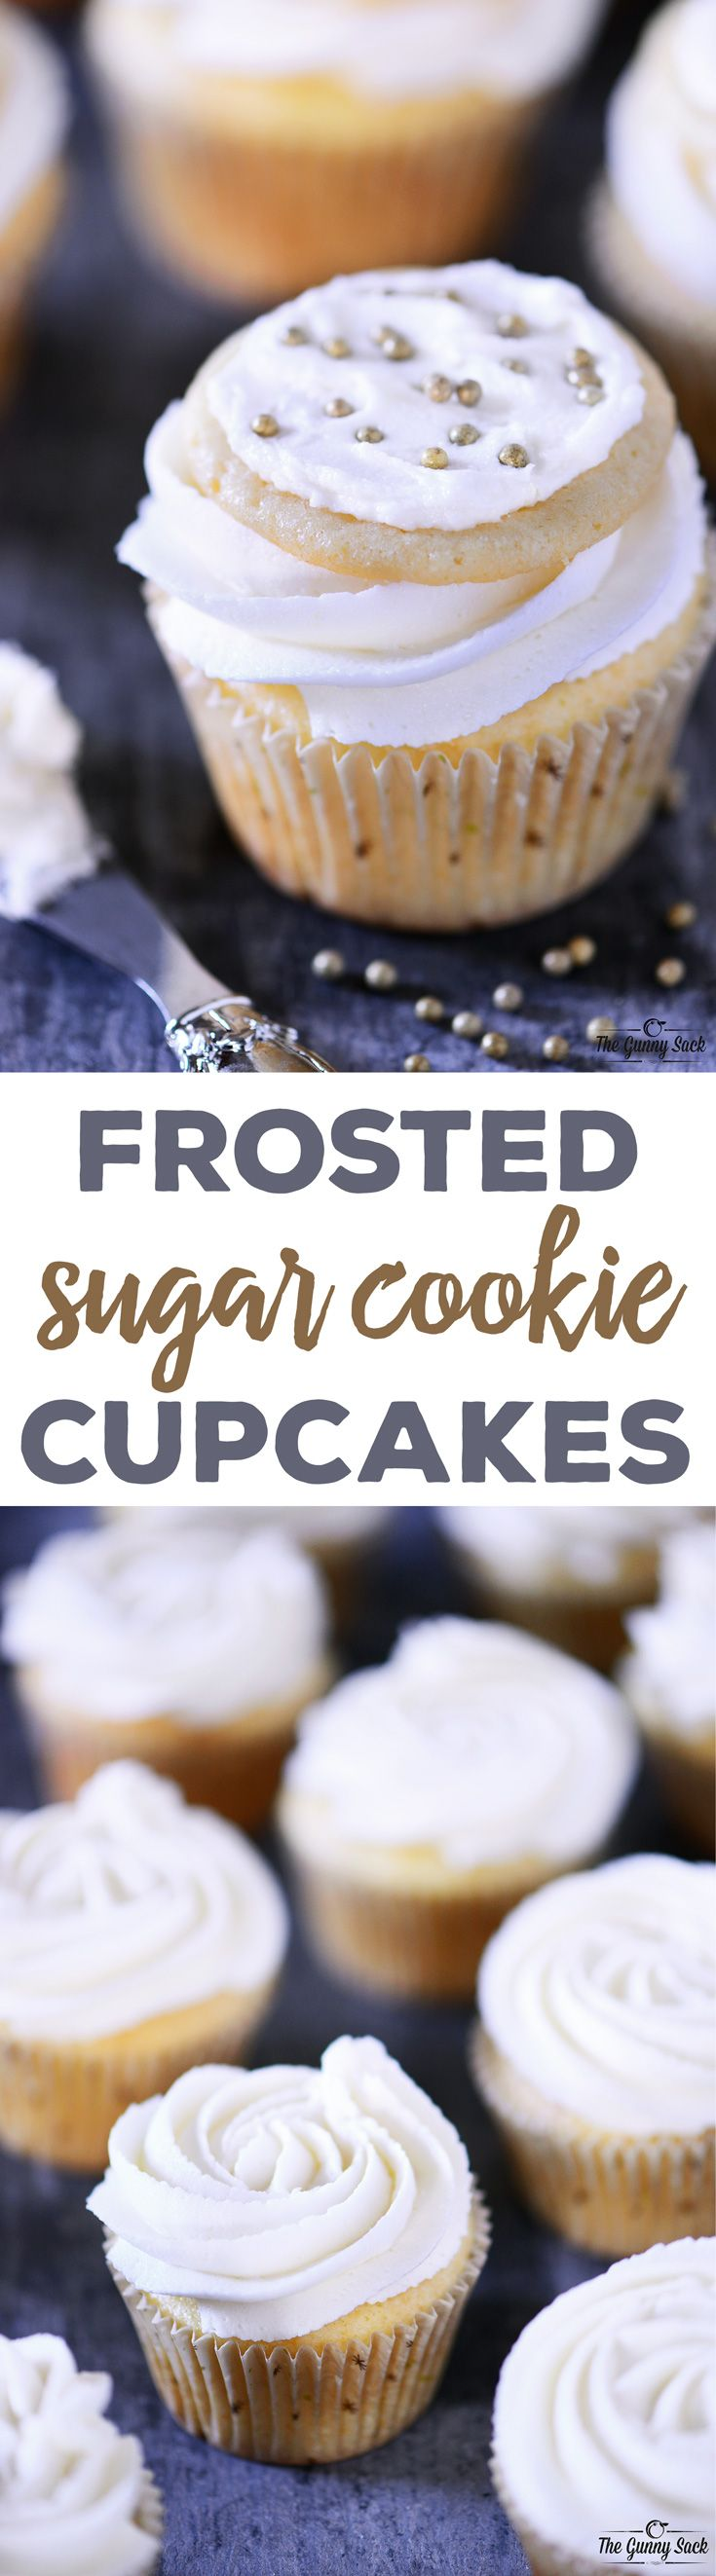 This recipe for Frosted Sugar Cookie Cupcakes has a vanilla cupcake on the bottom with vanilla buttercream frosting and a frosted sugar cookie on top. #sponsored #myBAILEYScreamers